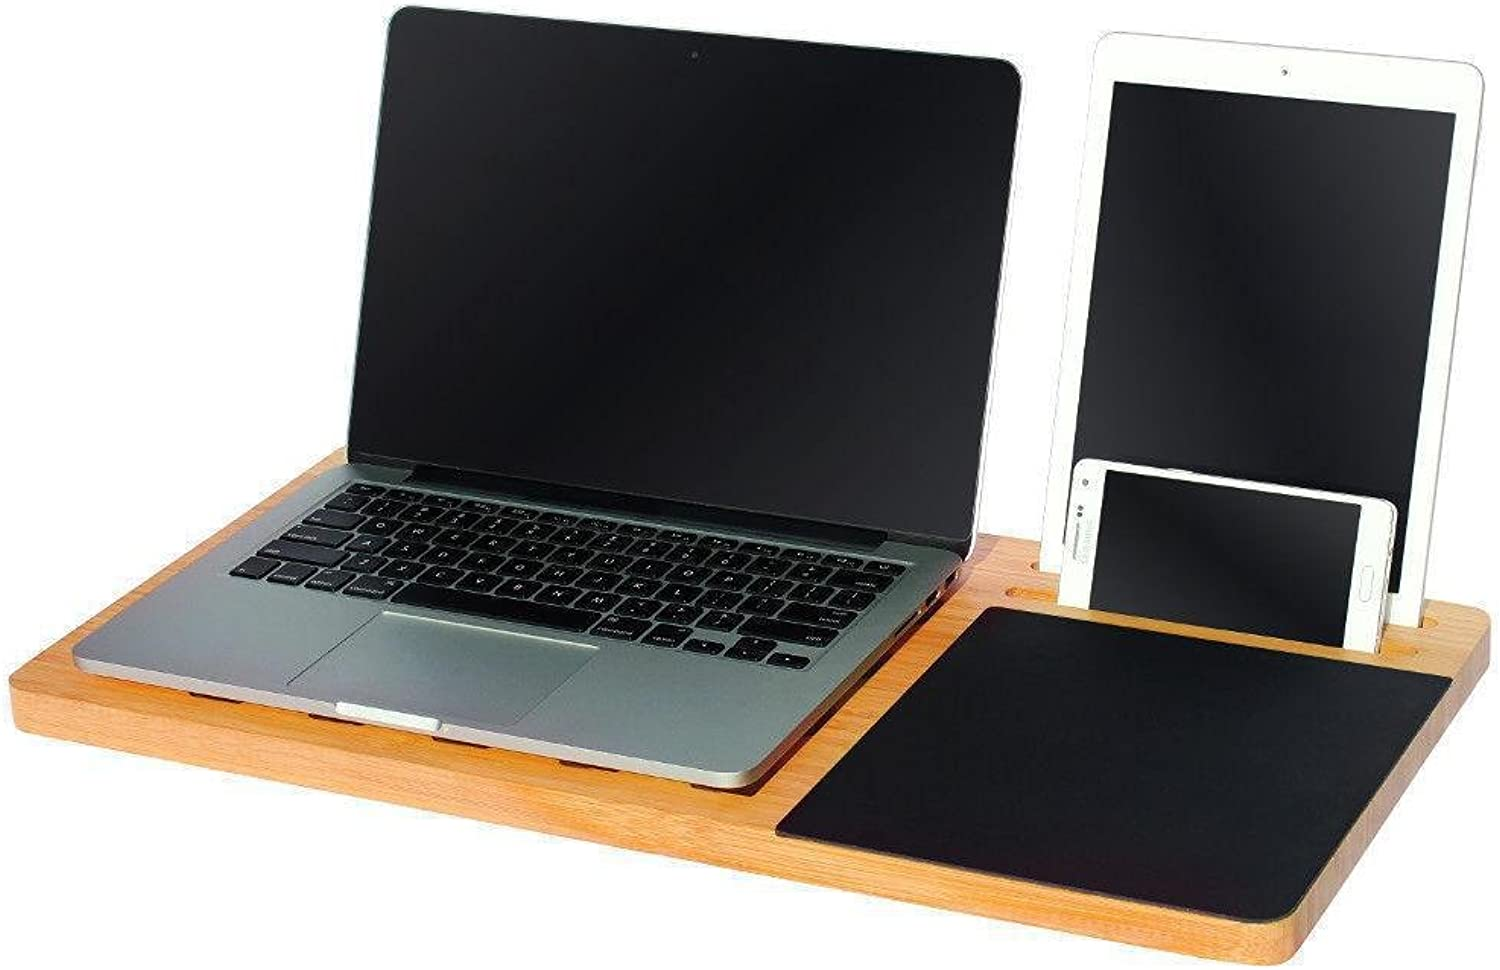 Bamboo Lap Desk - Fits 11 to 15  Laptop, Right Handed Mouse Pad, iPad iPhone Compatible, Ergonomic Sofa Bed Table, Portable, by Legion Woodcraft (Australian Seller)